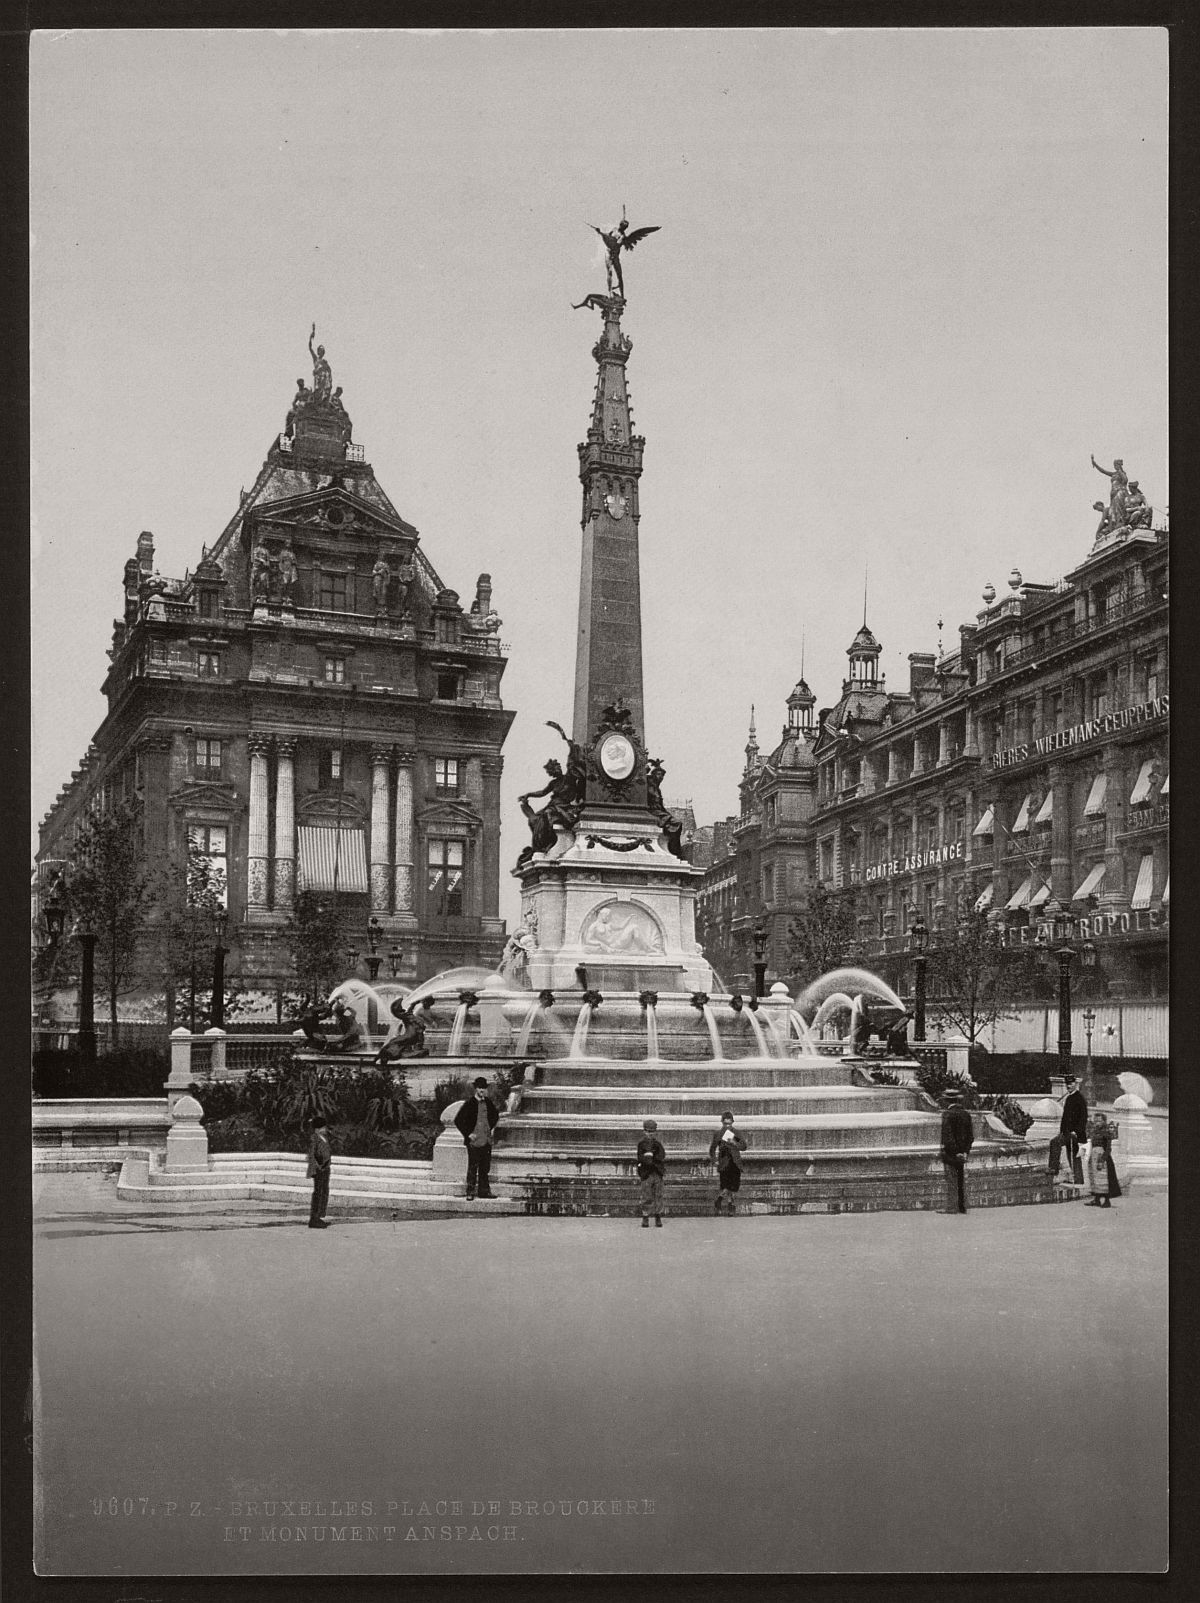 historic-bw-photos-of-brussels-belgium-in-the-19th-century-09